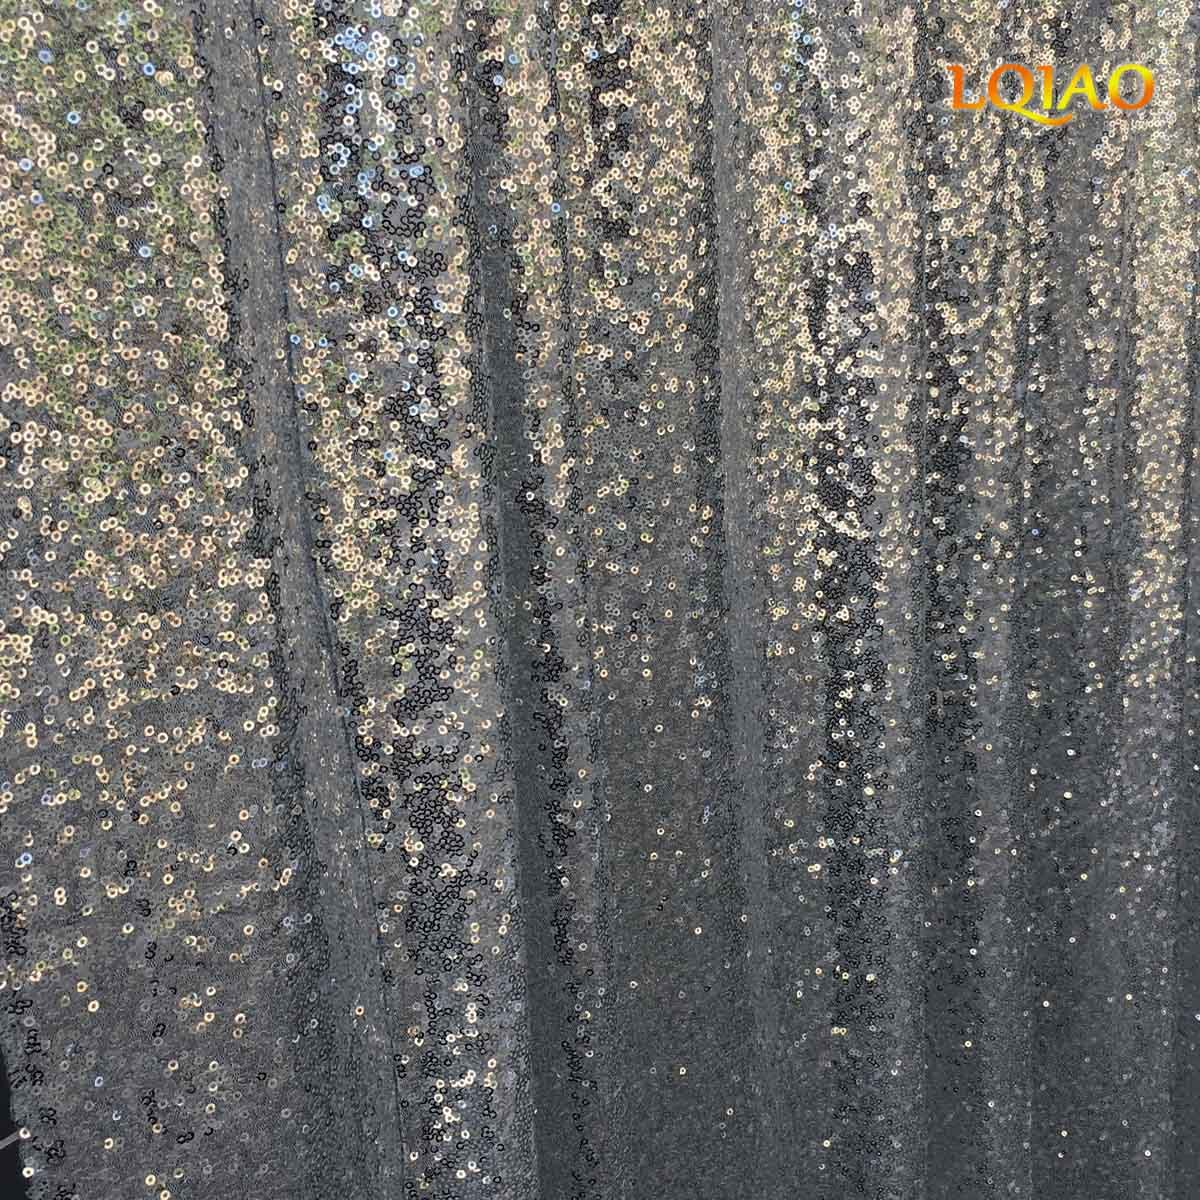 LQIAO 20x10ft-Sequin Backdrop Silver Sequin Curtain Photography Booth Backdrop for Wedding/Party Decoration(600x300cm)